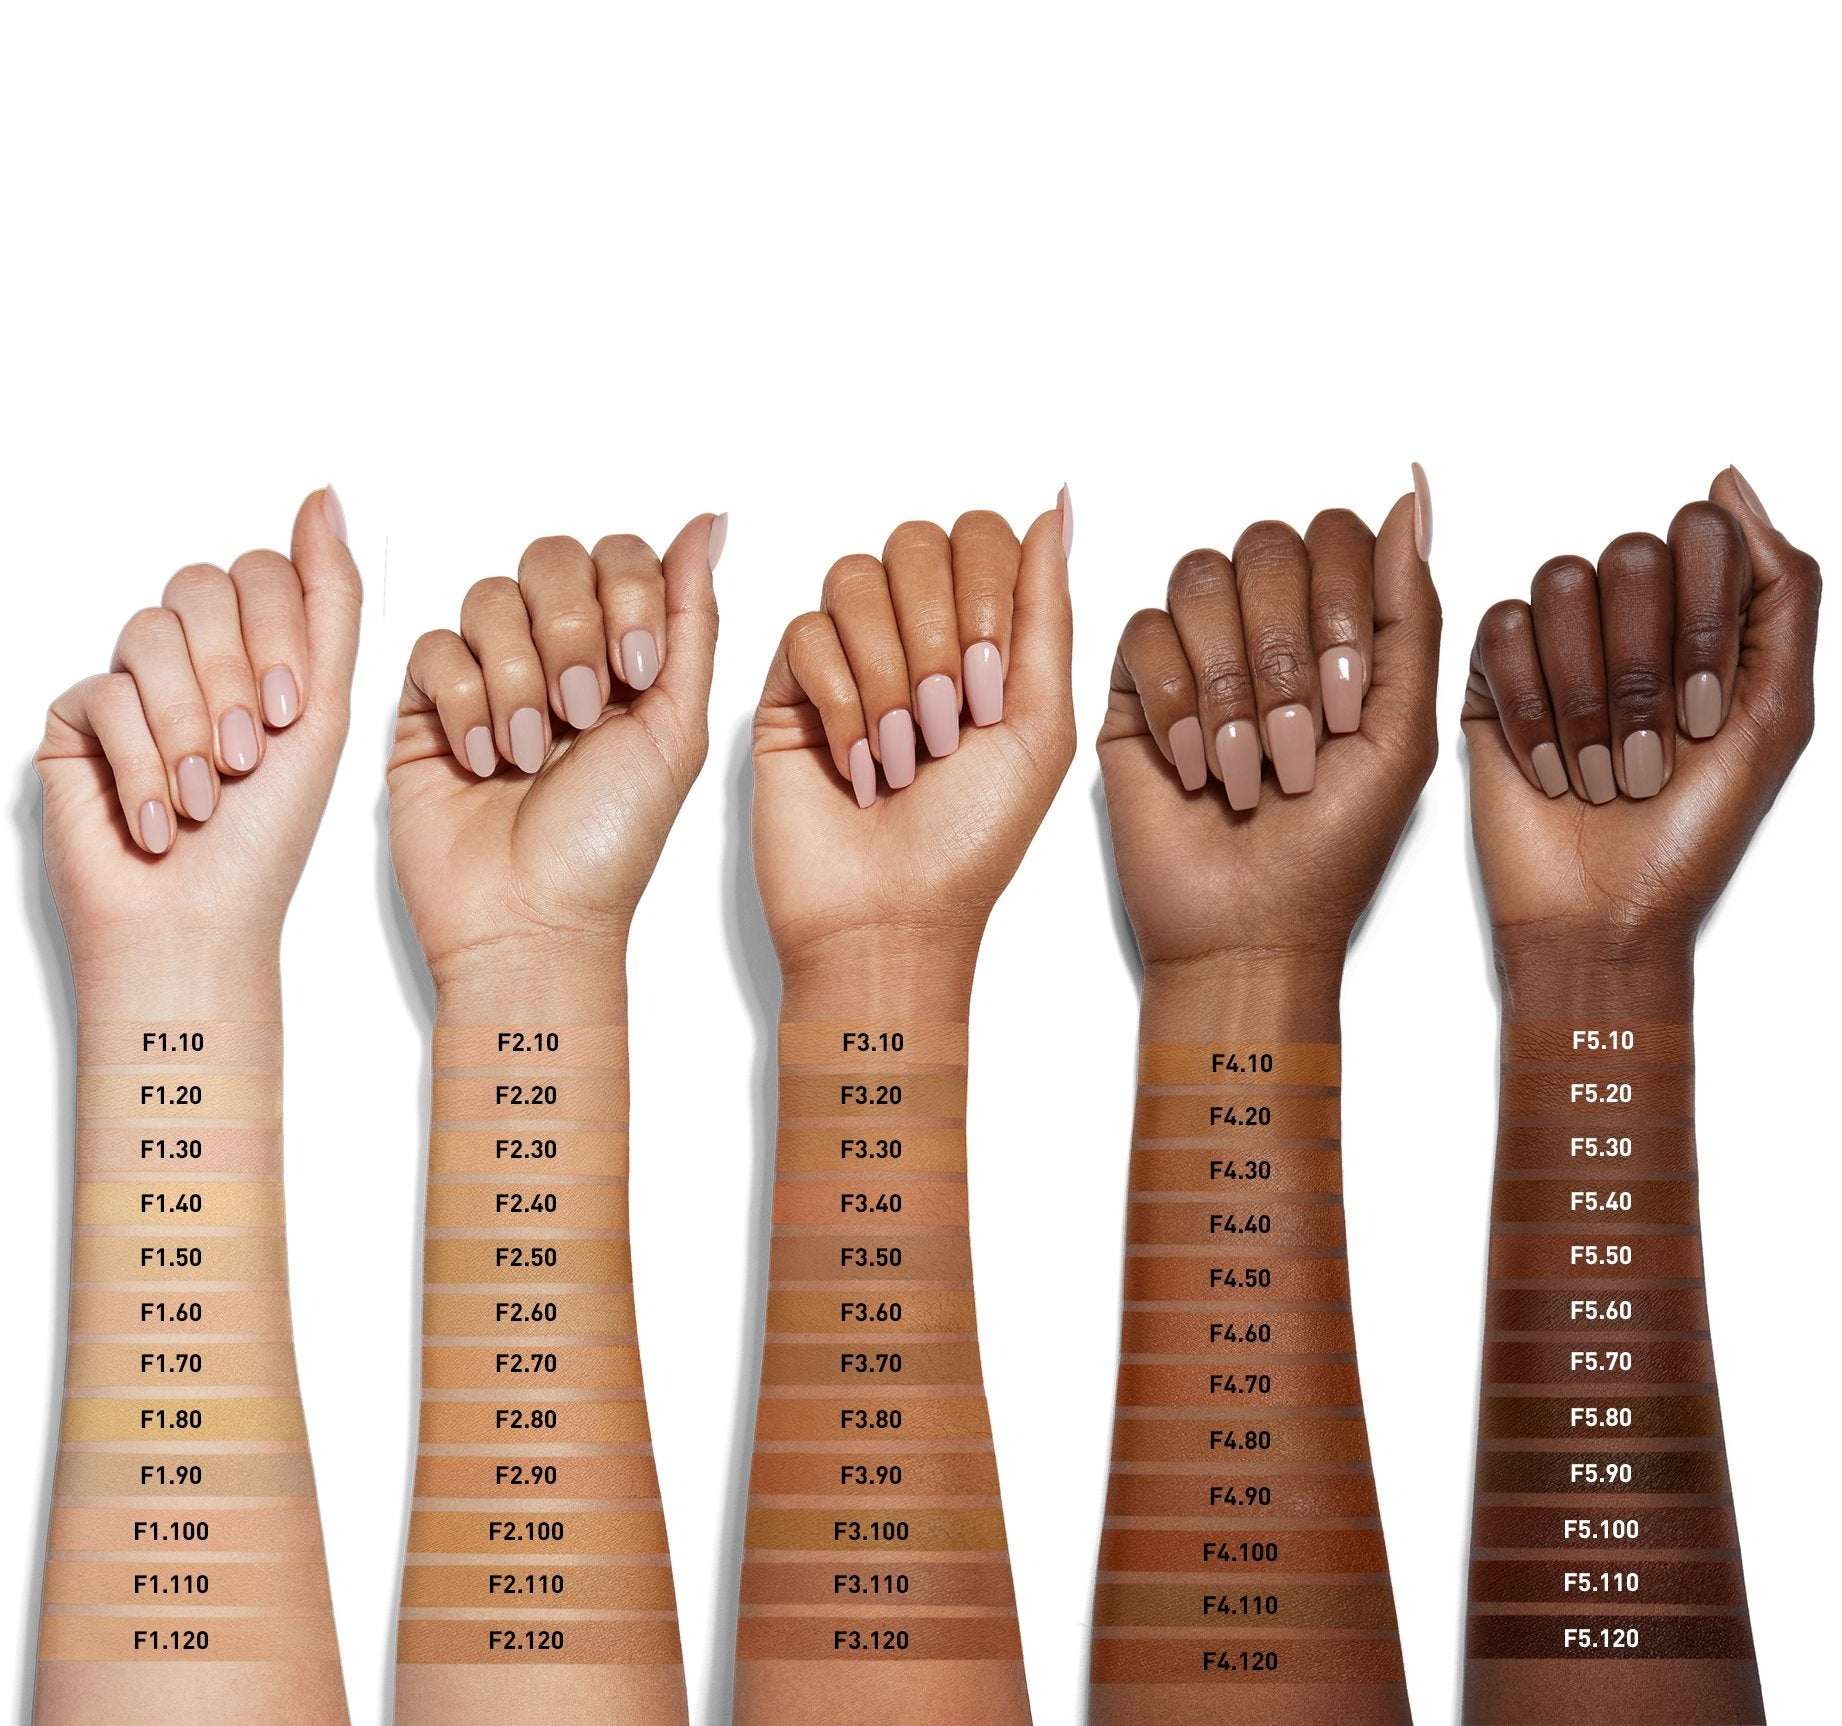 FLUIDITY FULL-COVERAGE FOUNDATION - F5.40 ARM SWATCHES, view larger image